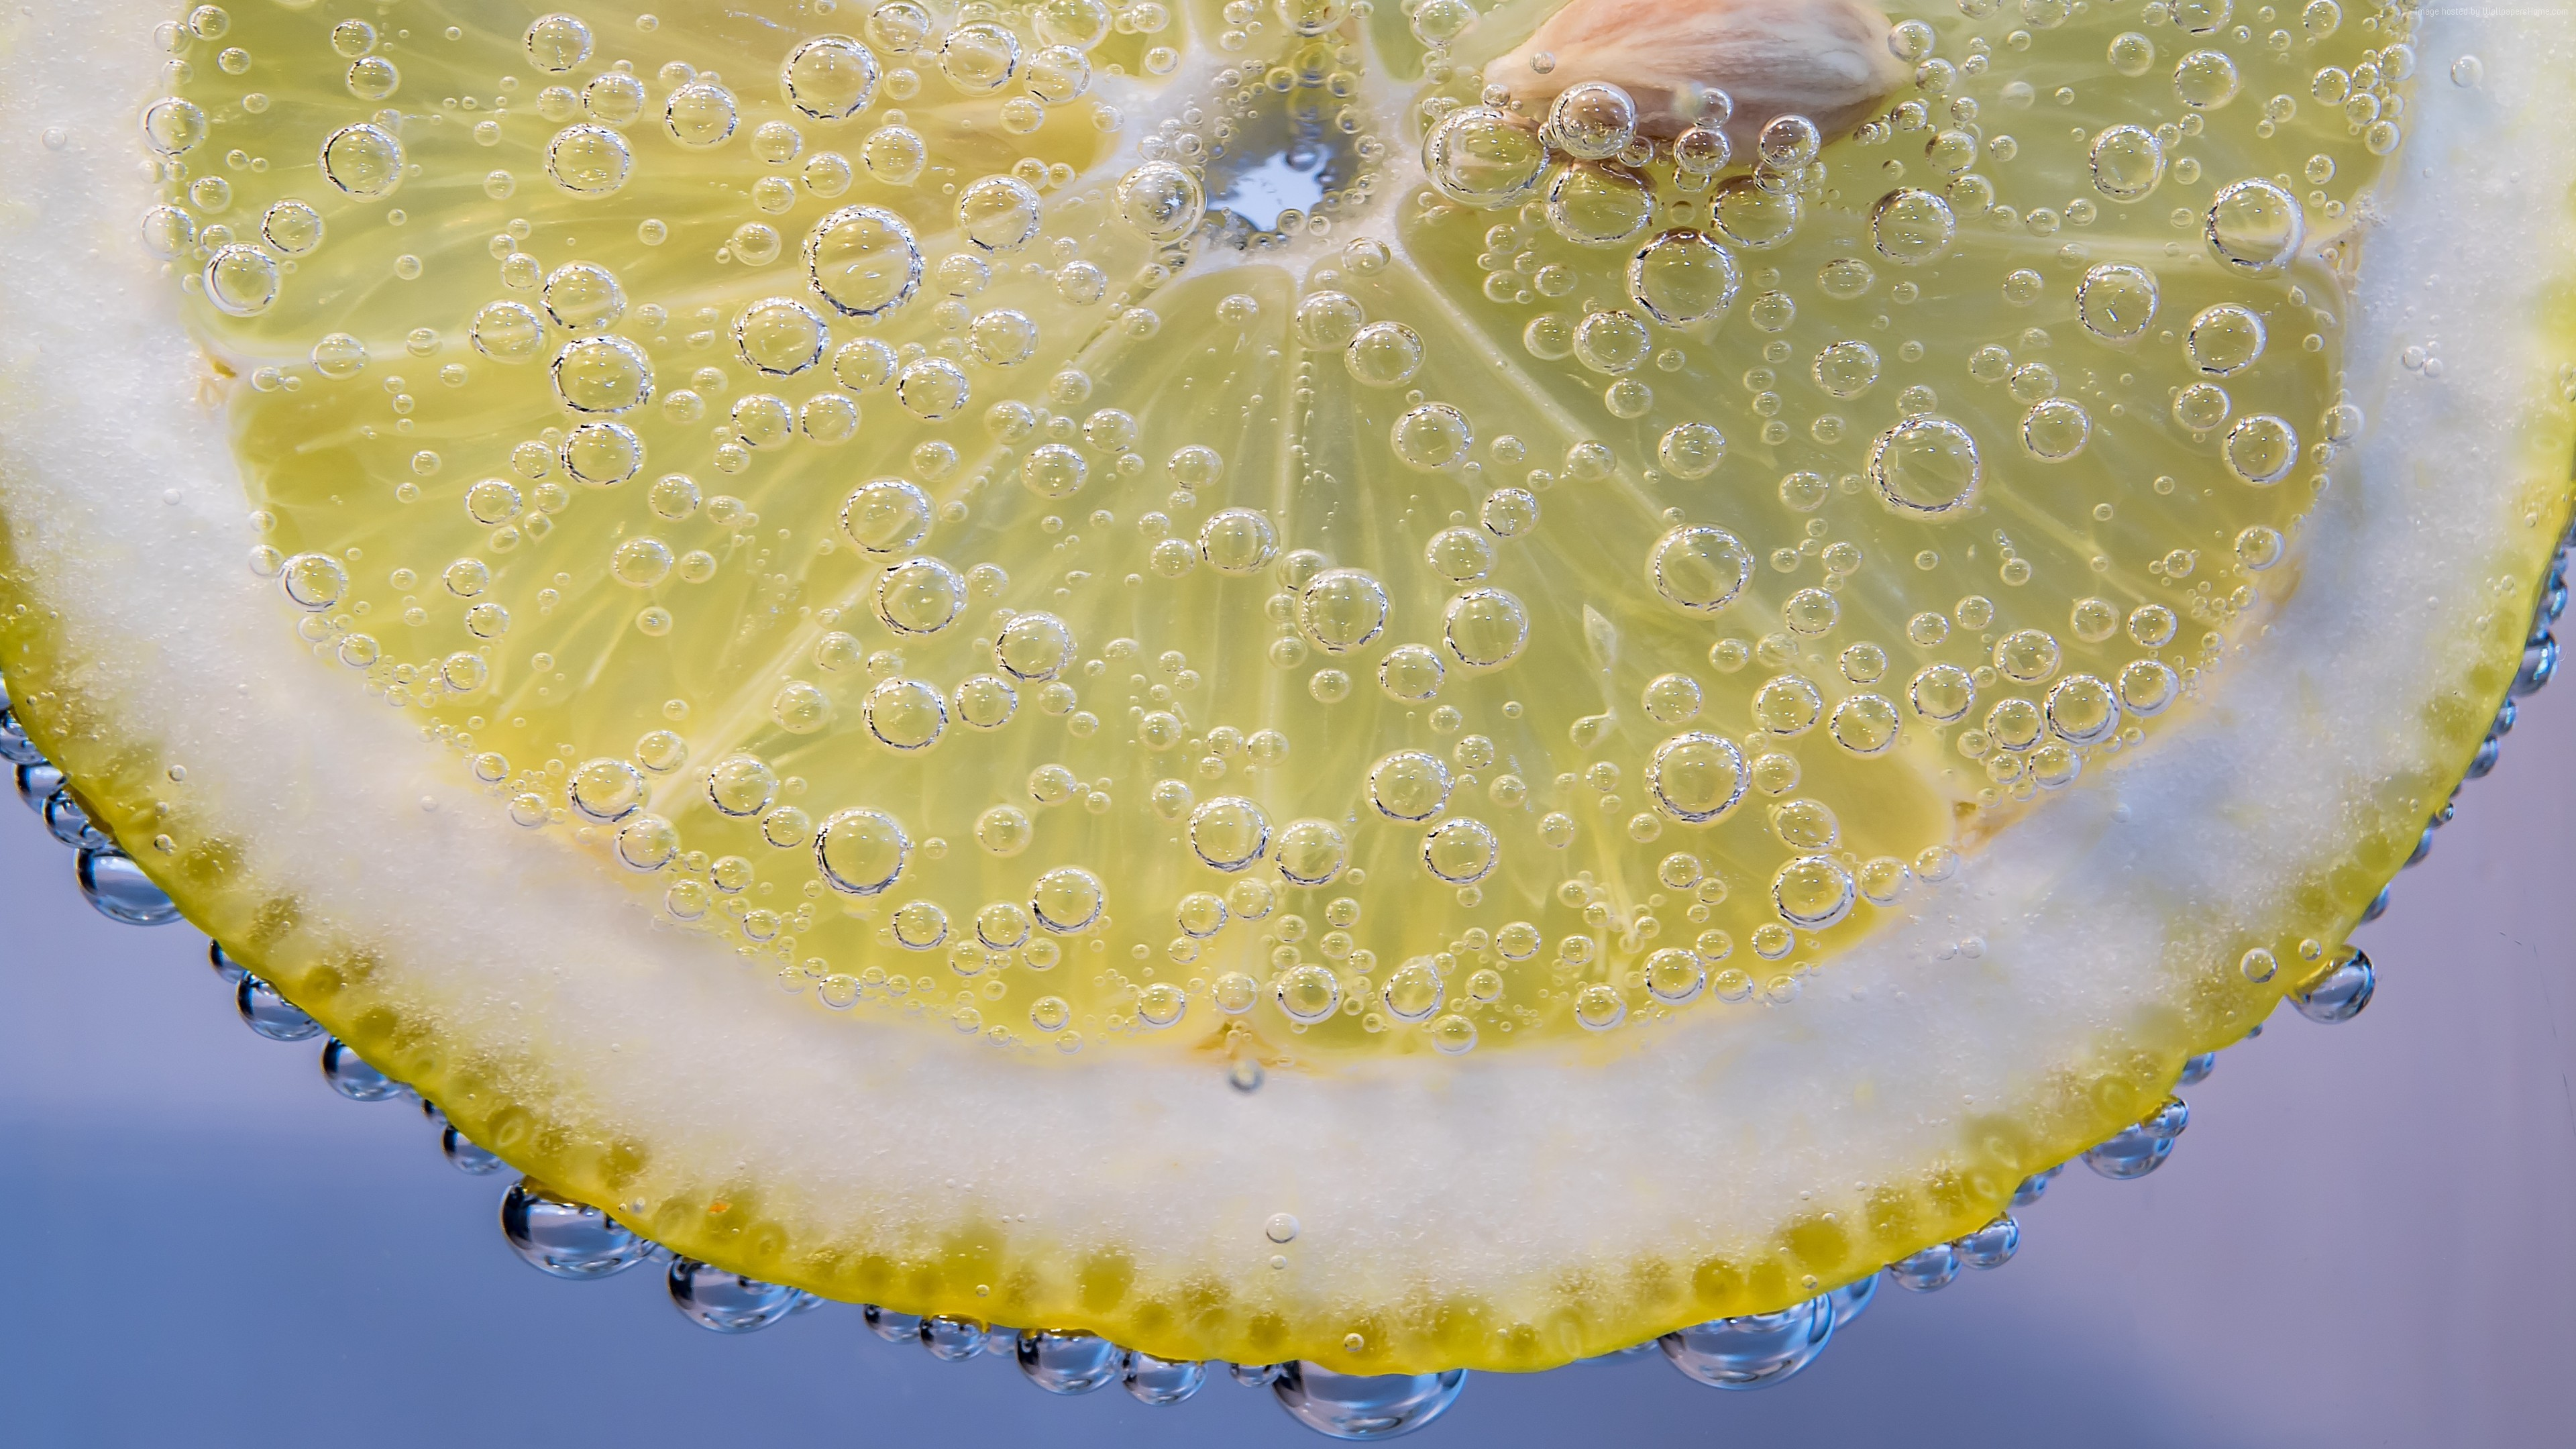 Stock Images lemon, under water, 5k, Stock Images